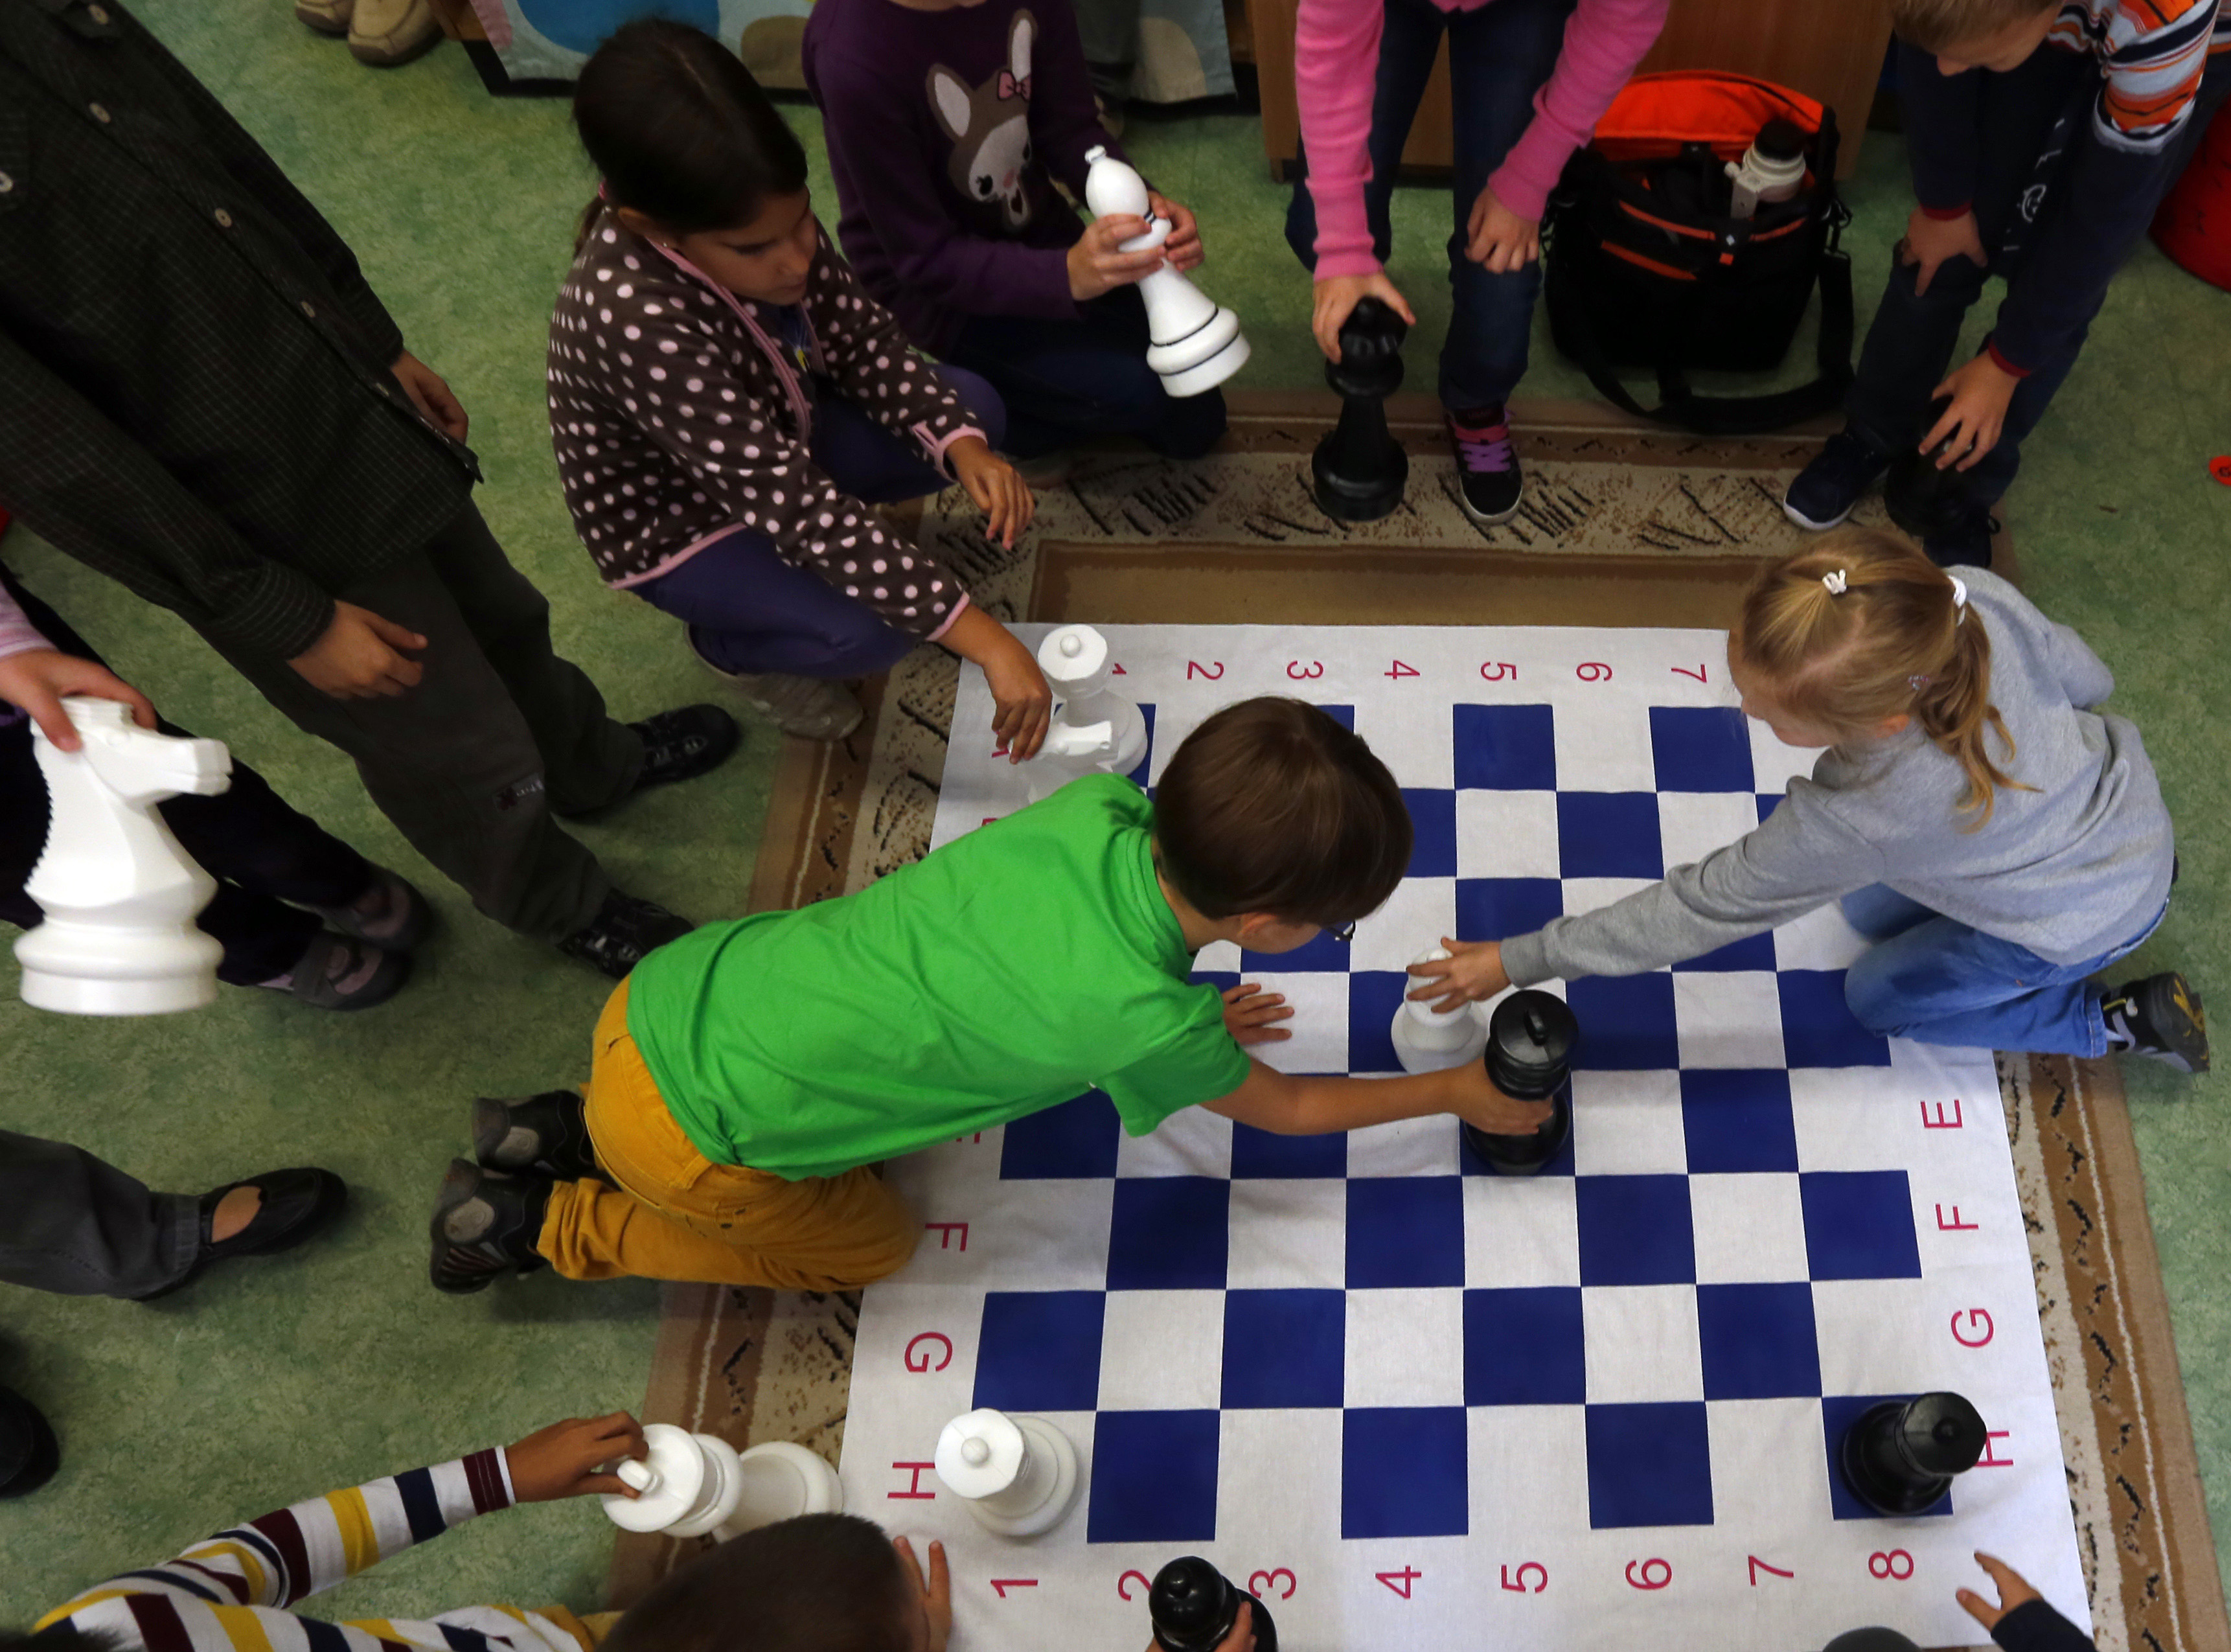 Children play chess at a classroom in the Dezso Lemhenyi school, which uses the new Chess Palace teaching programme of the world's best female chess player Judit Polgar, in Budapest October 15, 2013. With names like Jumpy Horse, Boom Rook and Tiny Pawn, pieces in the Chess Palace come to life and are like close friends who guide the children through difficult school subjects. They range in size from 1 cm (under half an inch) tall to a meter (three feet) in height. Chairs, walls and carpets also sport chess motifs. The pieces, whose combinations and moves represent mathematical, linguistic or musical patterns, help children develop their skills in chess and in their school studies while making the learning process a more joyous exercise. Picture taken October 15, 2013.REUTERS/Laszlo Balogh (HUNGARY - Tags: SPORT CHESS EDUCATION SOCIETY) - GM1E9AO1NK501